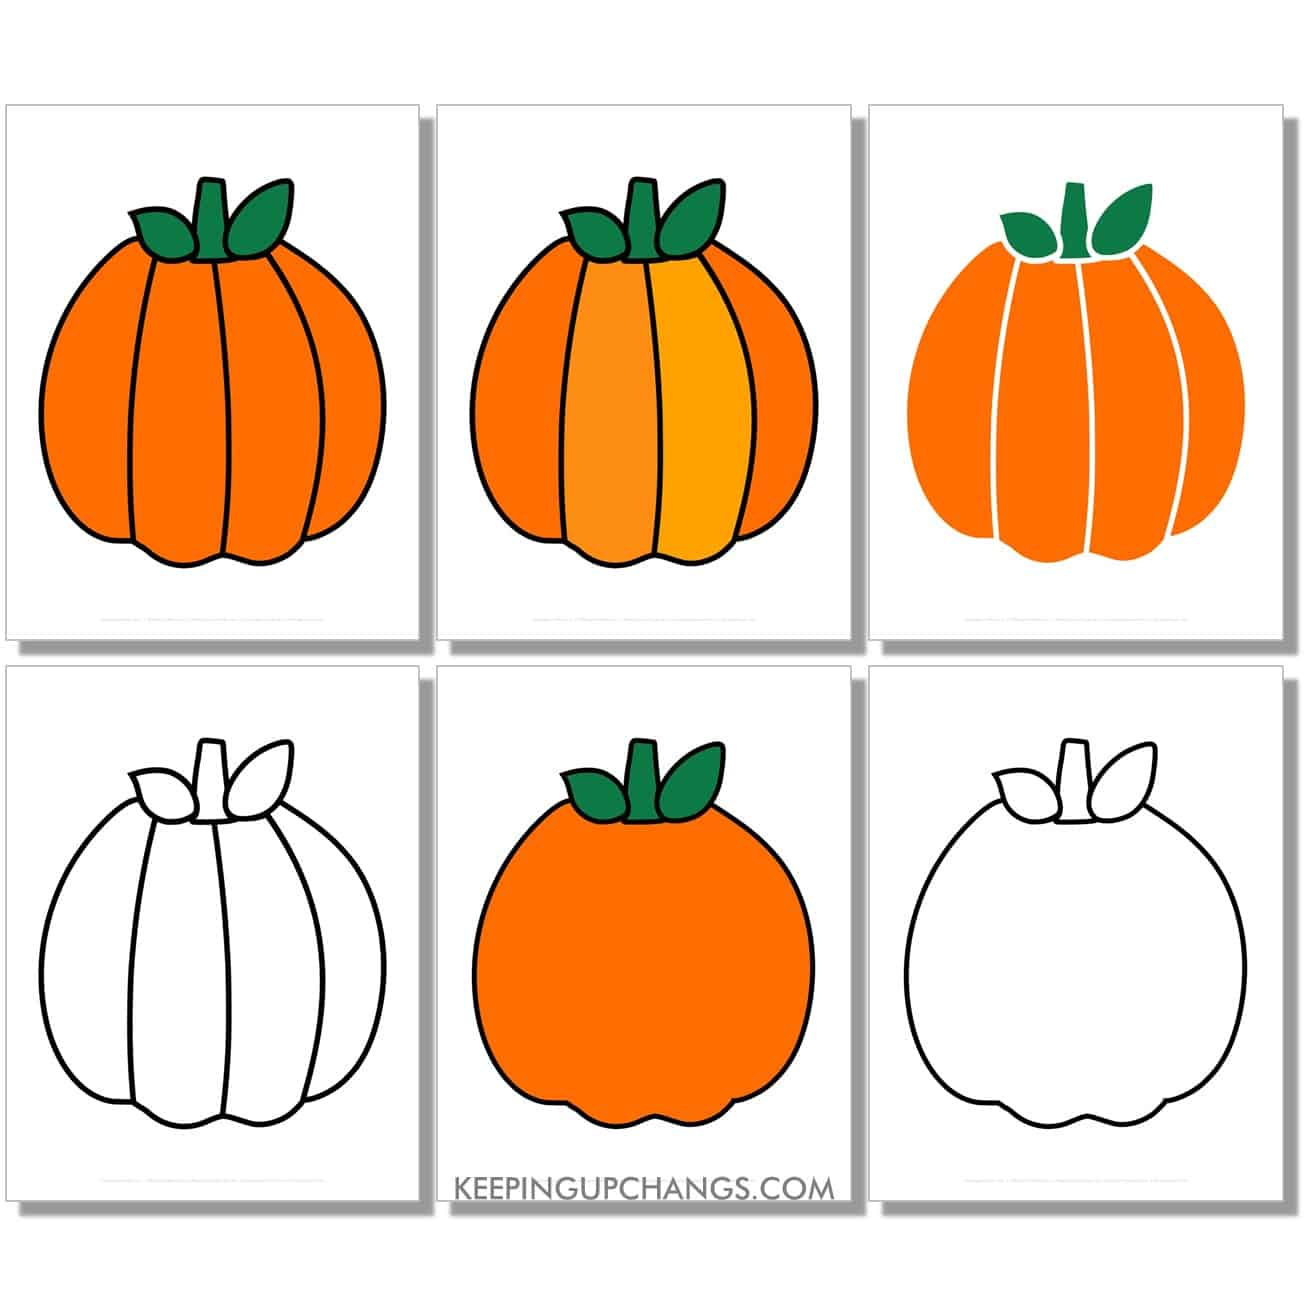 free large round pumpkin in color, black and white, silhouette, full size page.